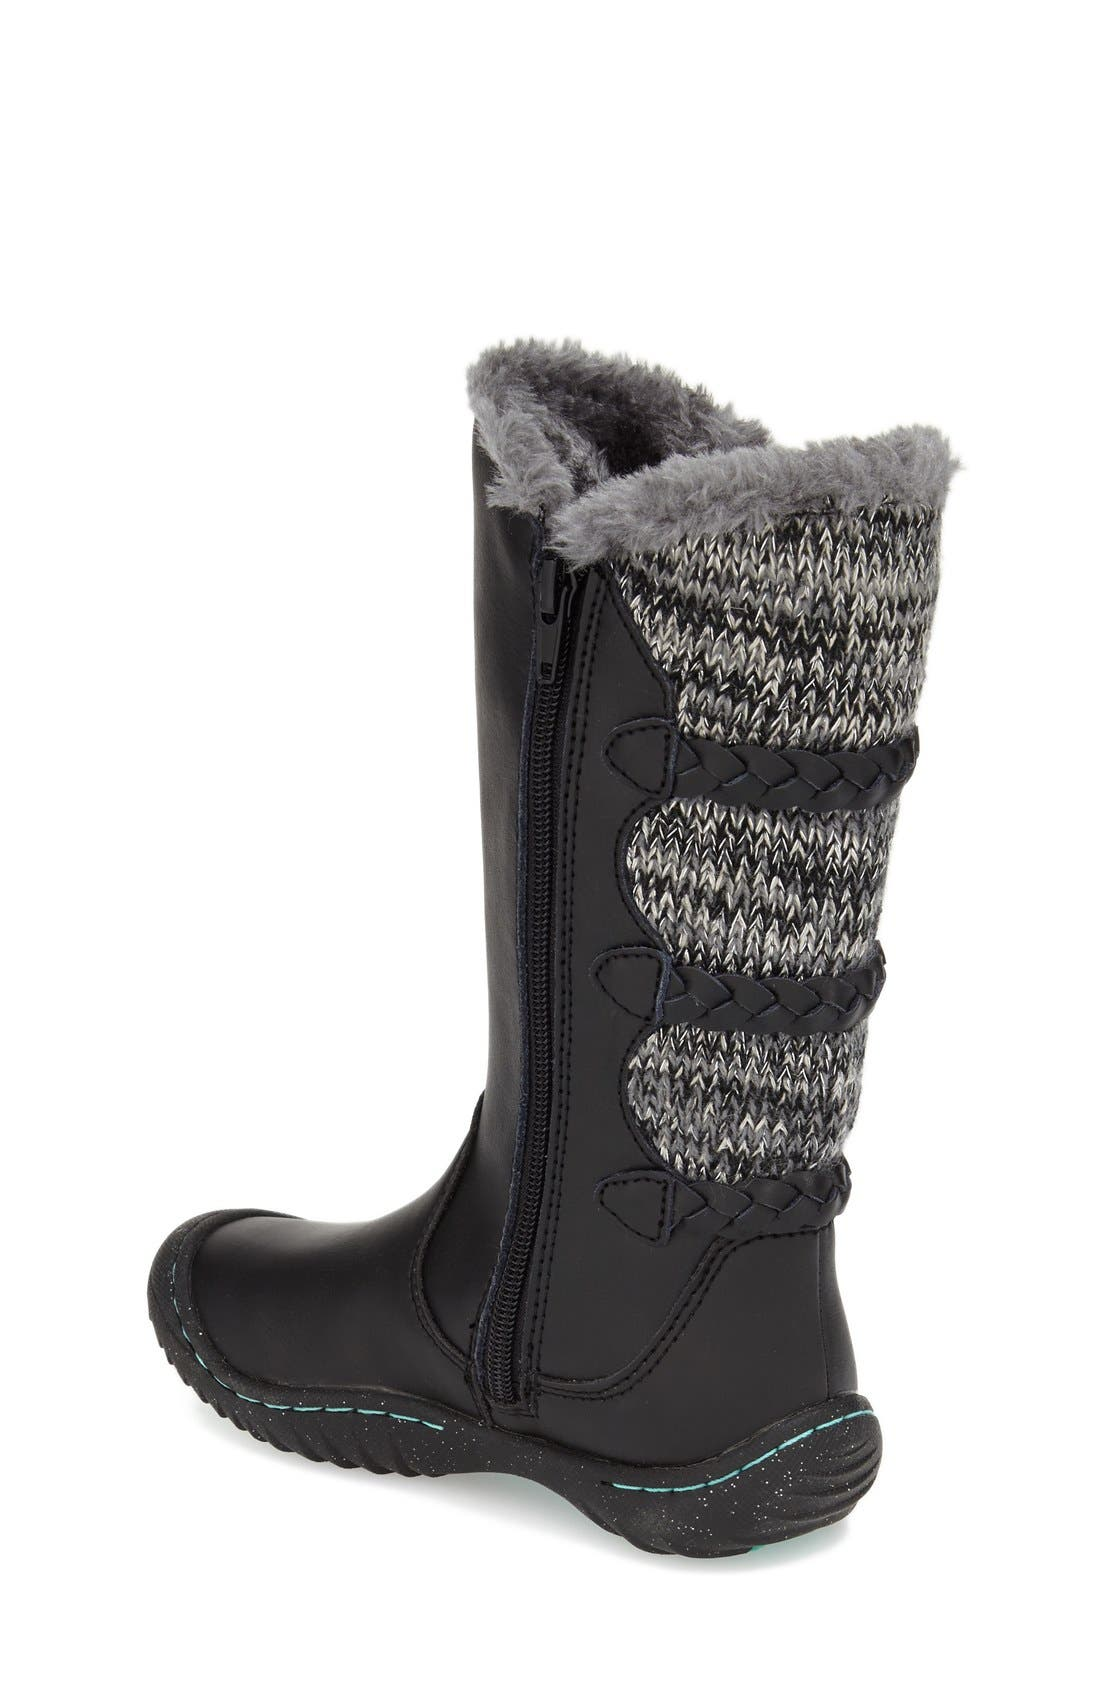 'Azami' Water Resistant Boot,                             Alternate thumbnail 2, color,                             001